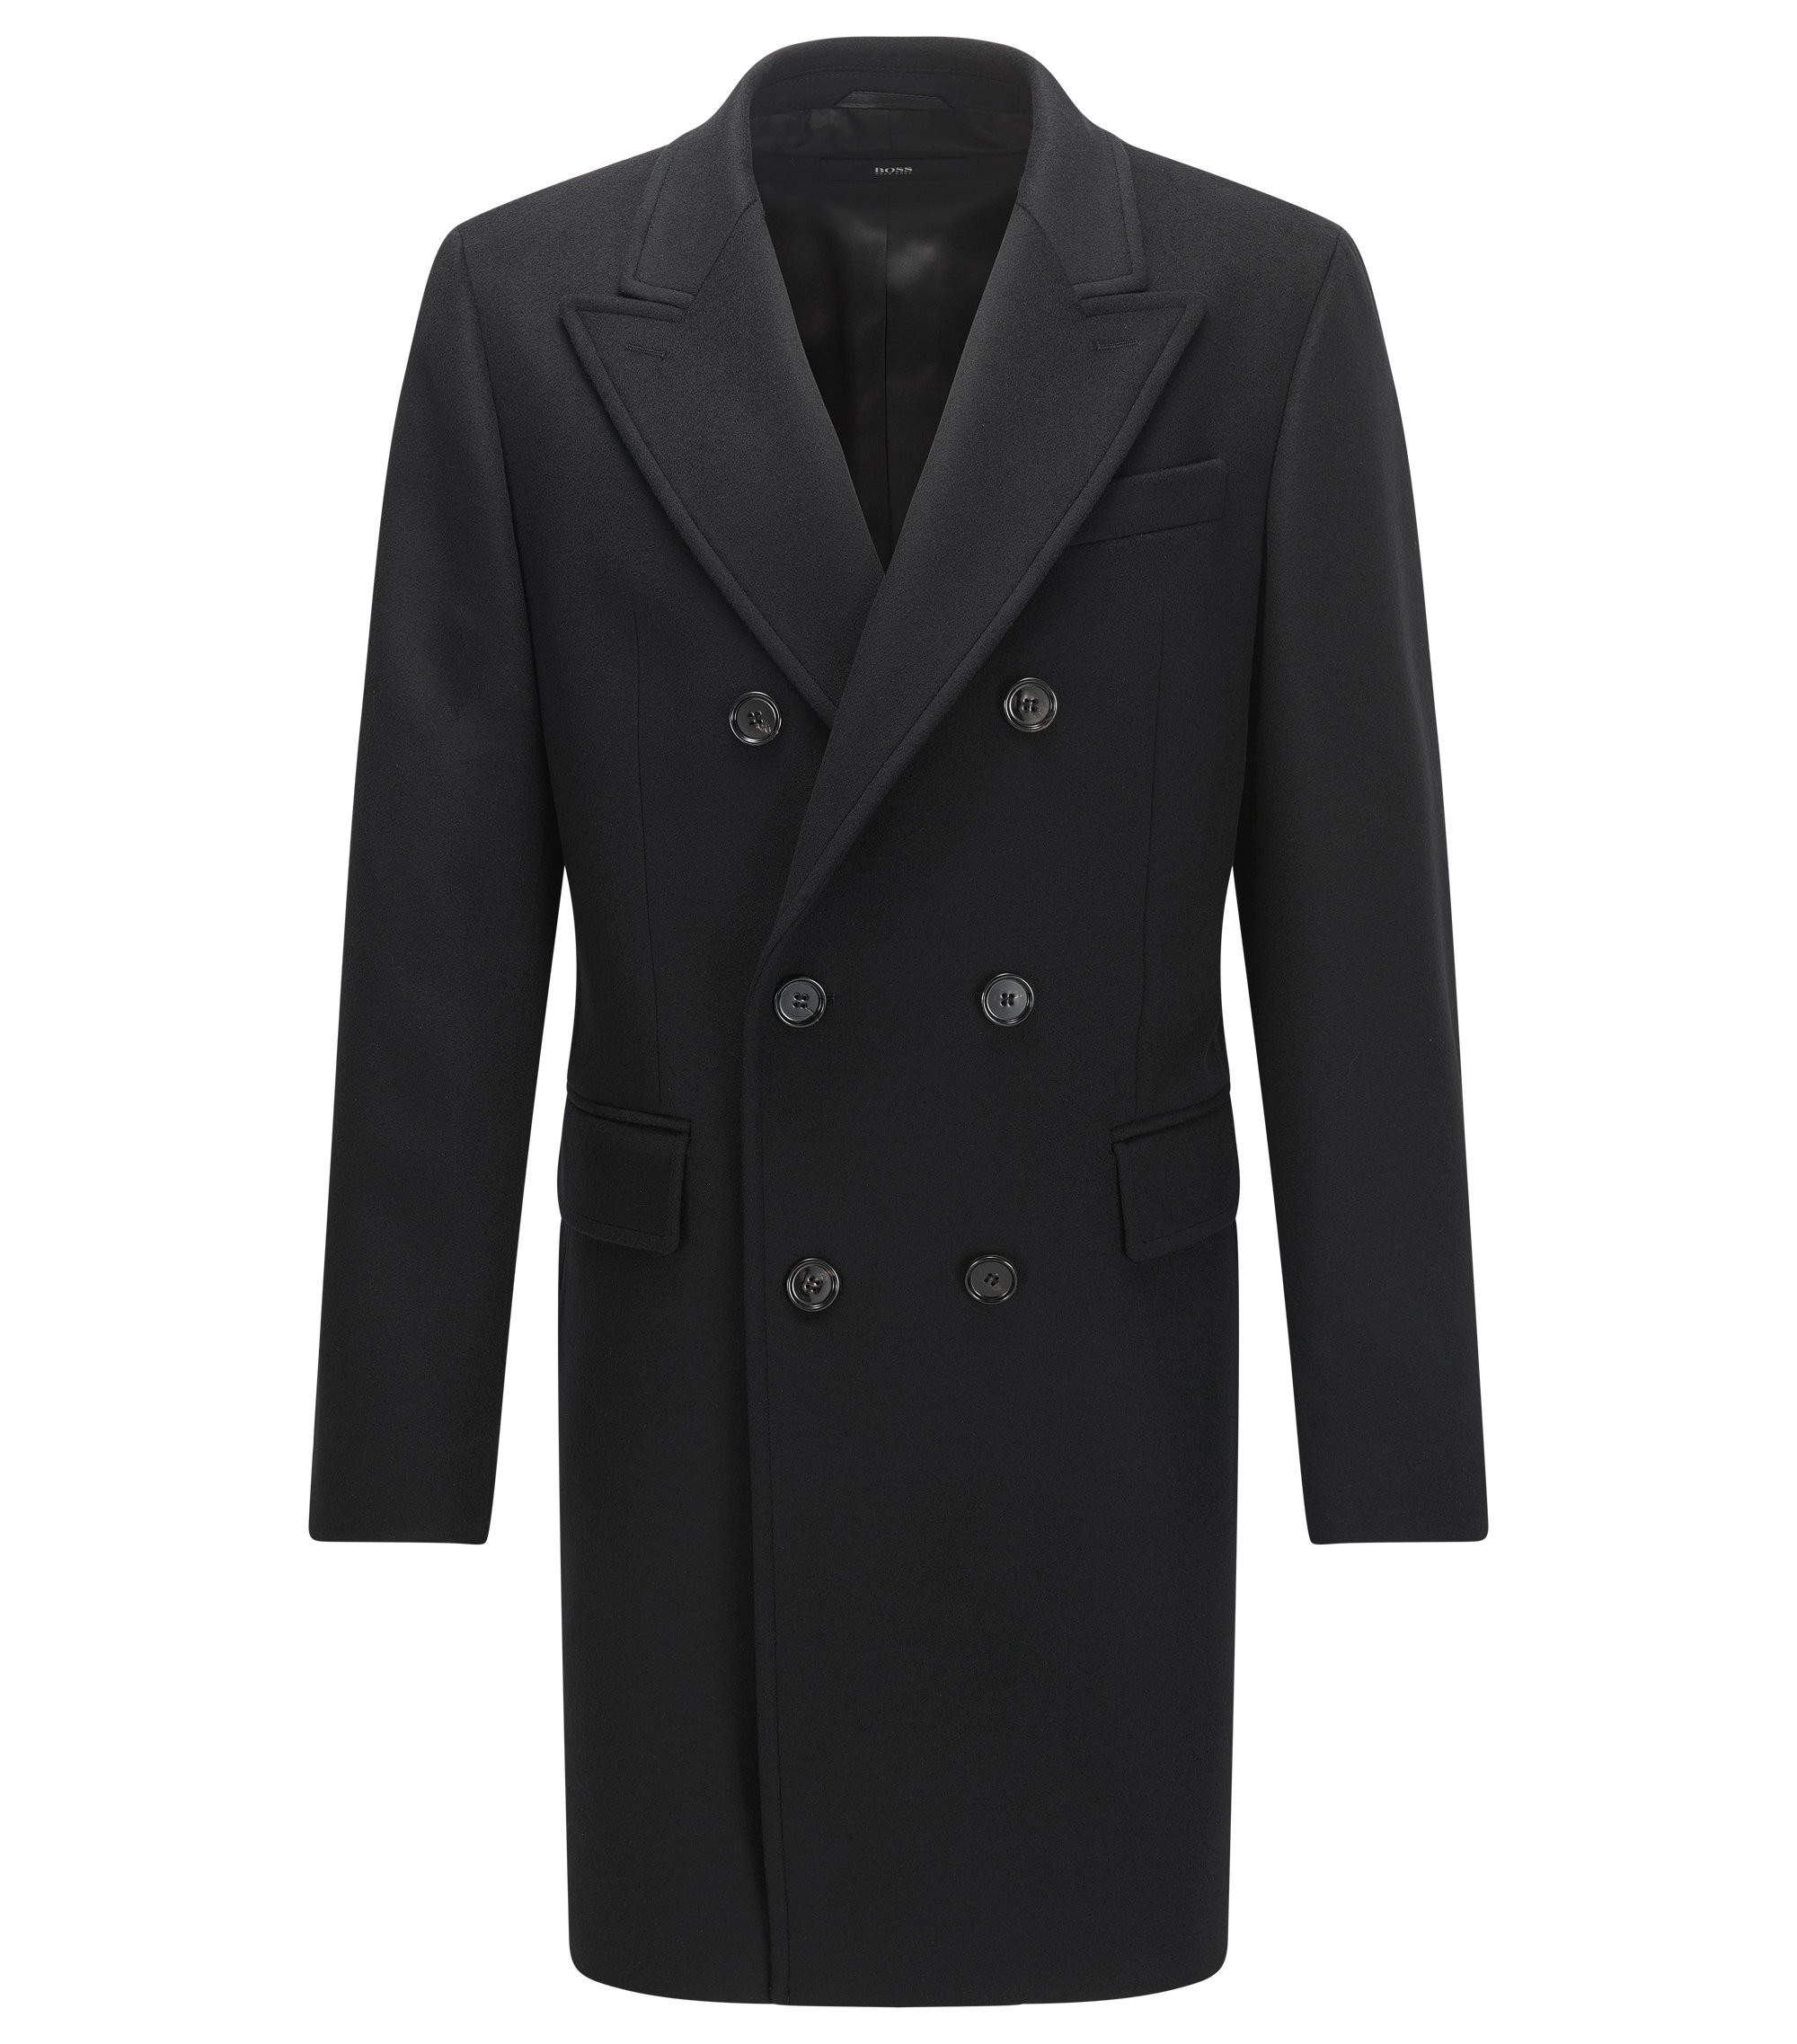 Double-breasted wool-blend coat in a slim fit, Black